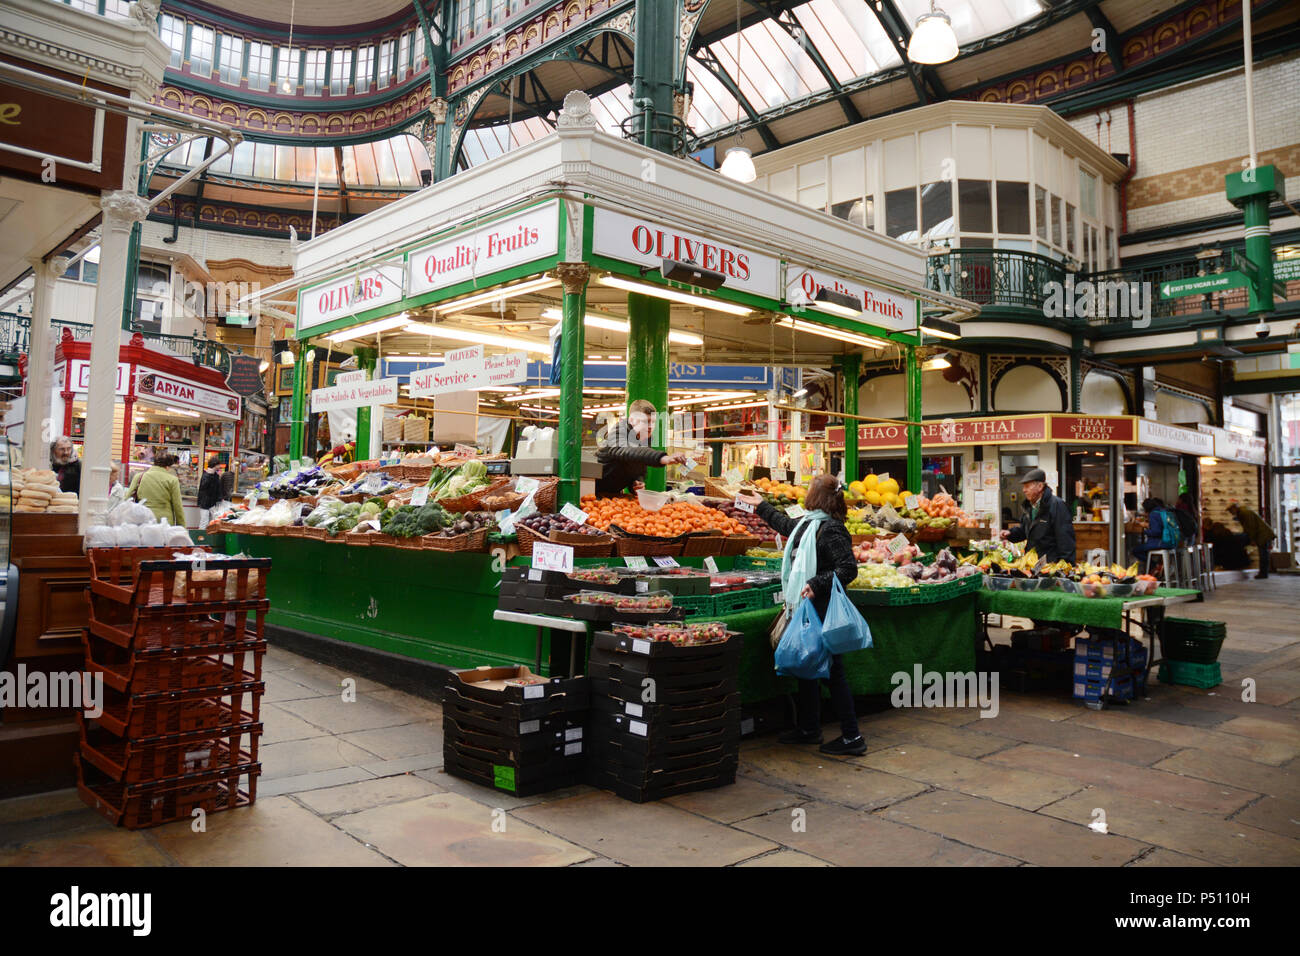 A shopper makes a purchase from a fruit and vegetable vendor at the indoor Kirkgate Market in the English city of Leeds, Yorkshire, United Kingdom. - Stock Image